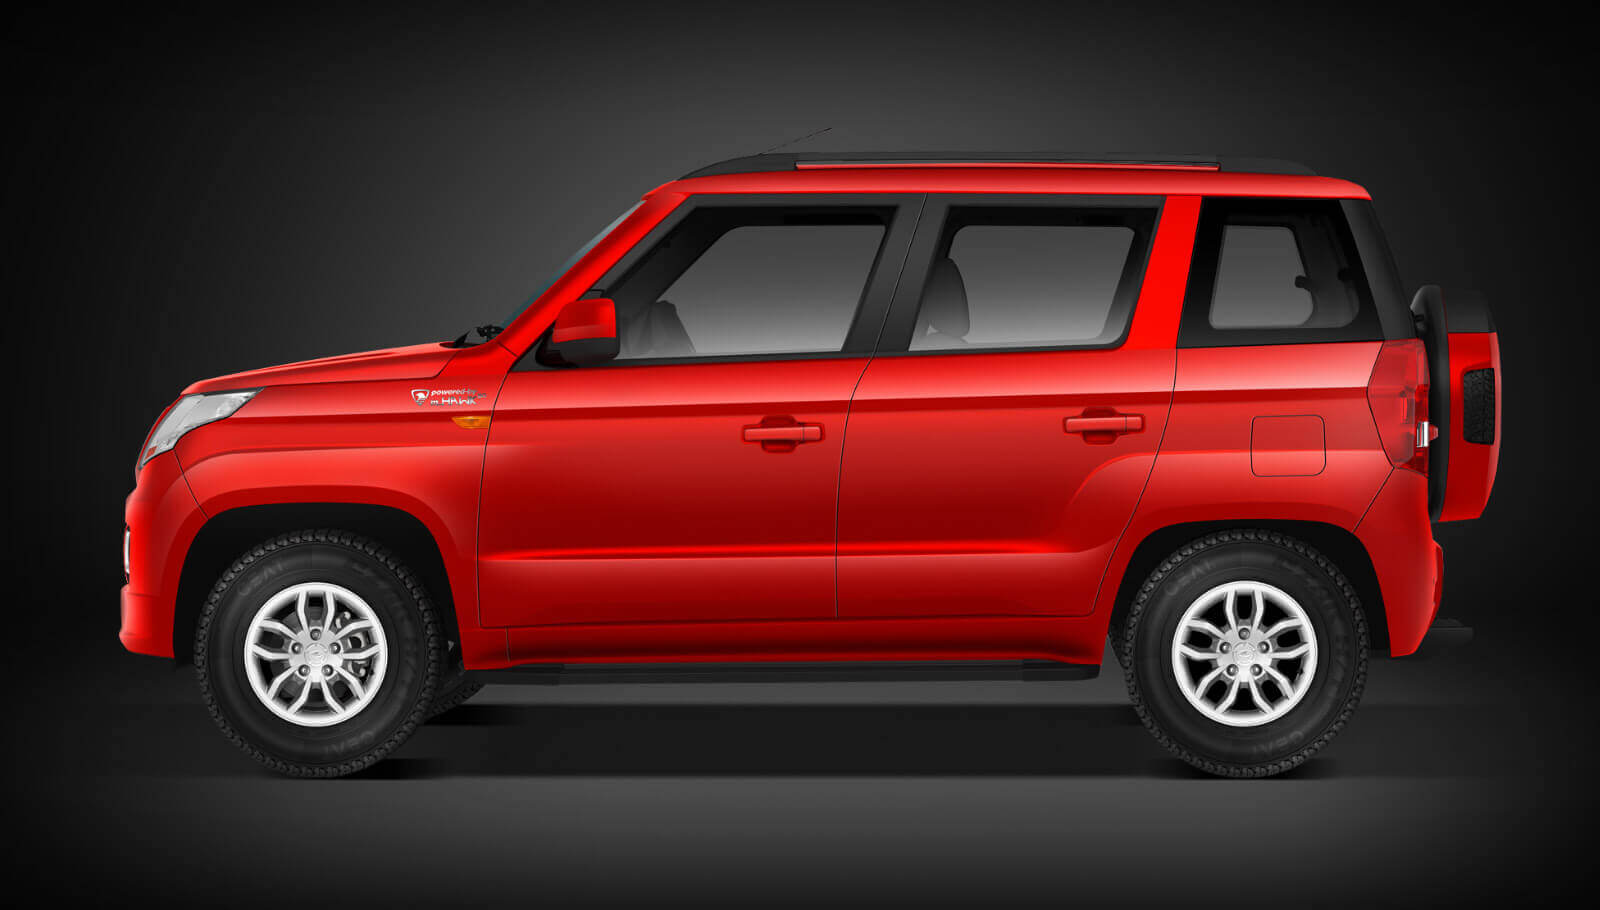 Mahindra Tuv 300 T 10 Top Of The Line Variant Launched In